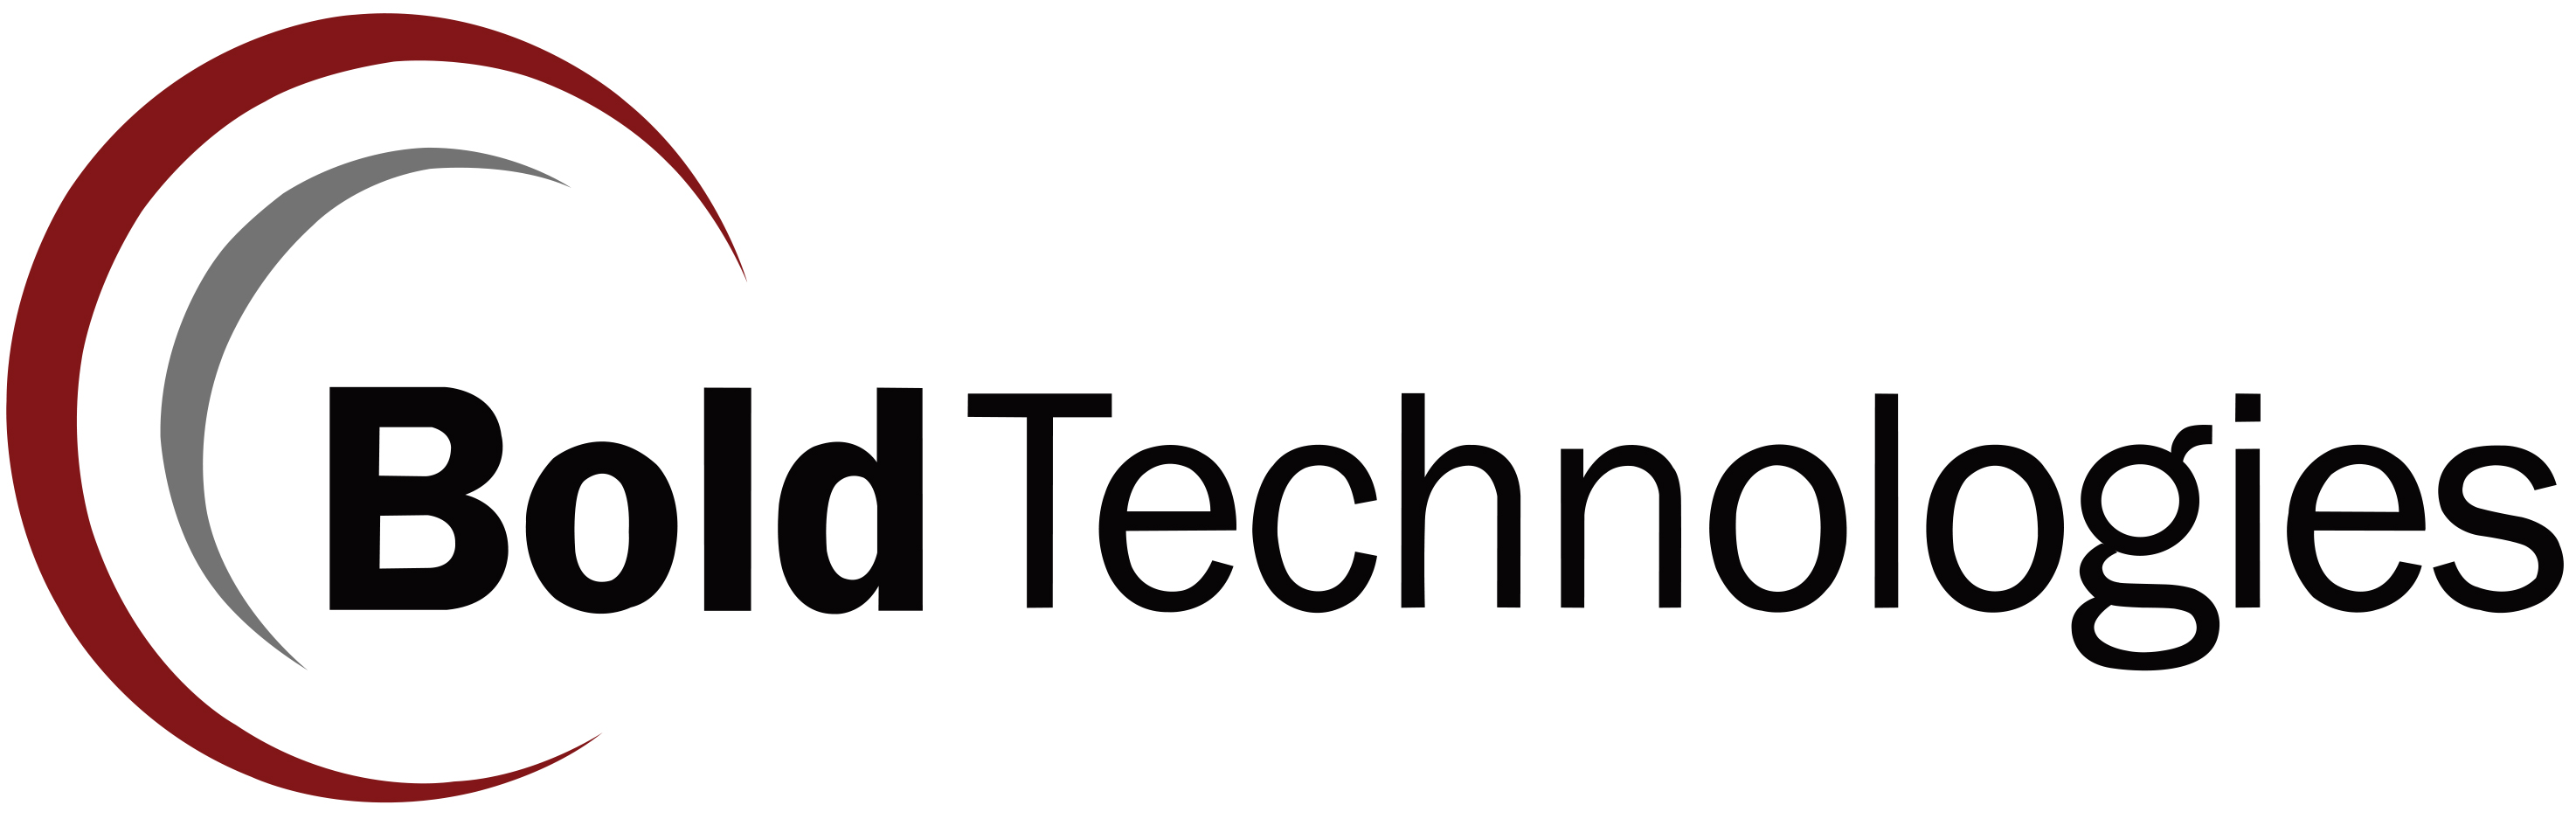 Bold-Technologies Logo no atmosphere